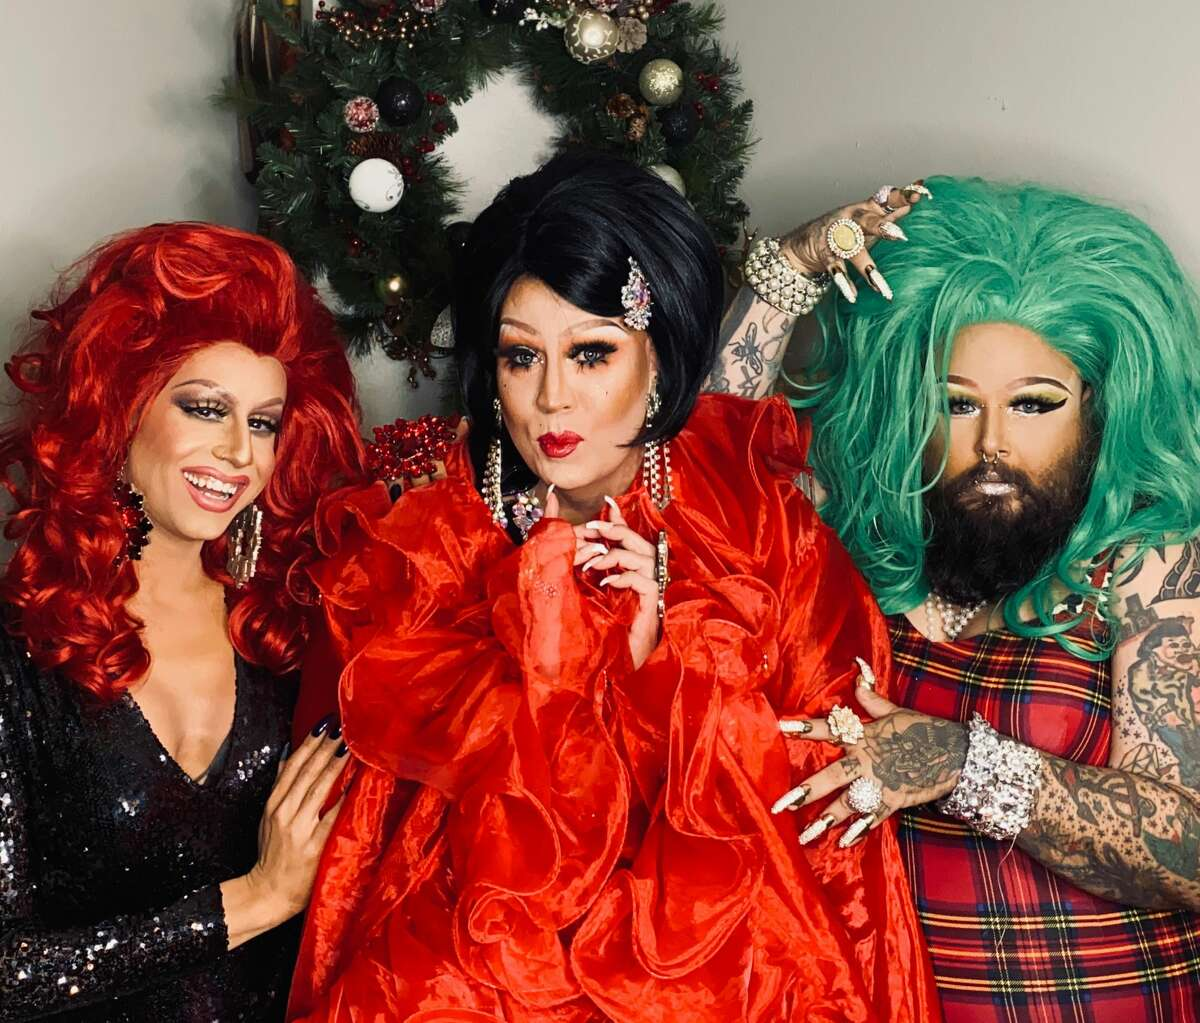 Dazzle your Christmas Day with a pre-recorded show by three local drag queens aiming to give back to the community.